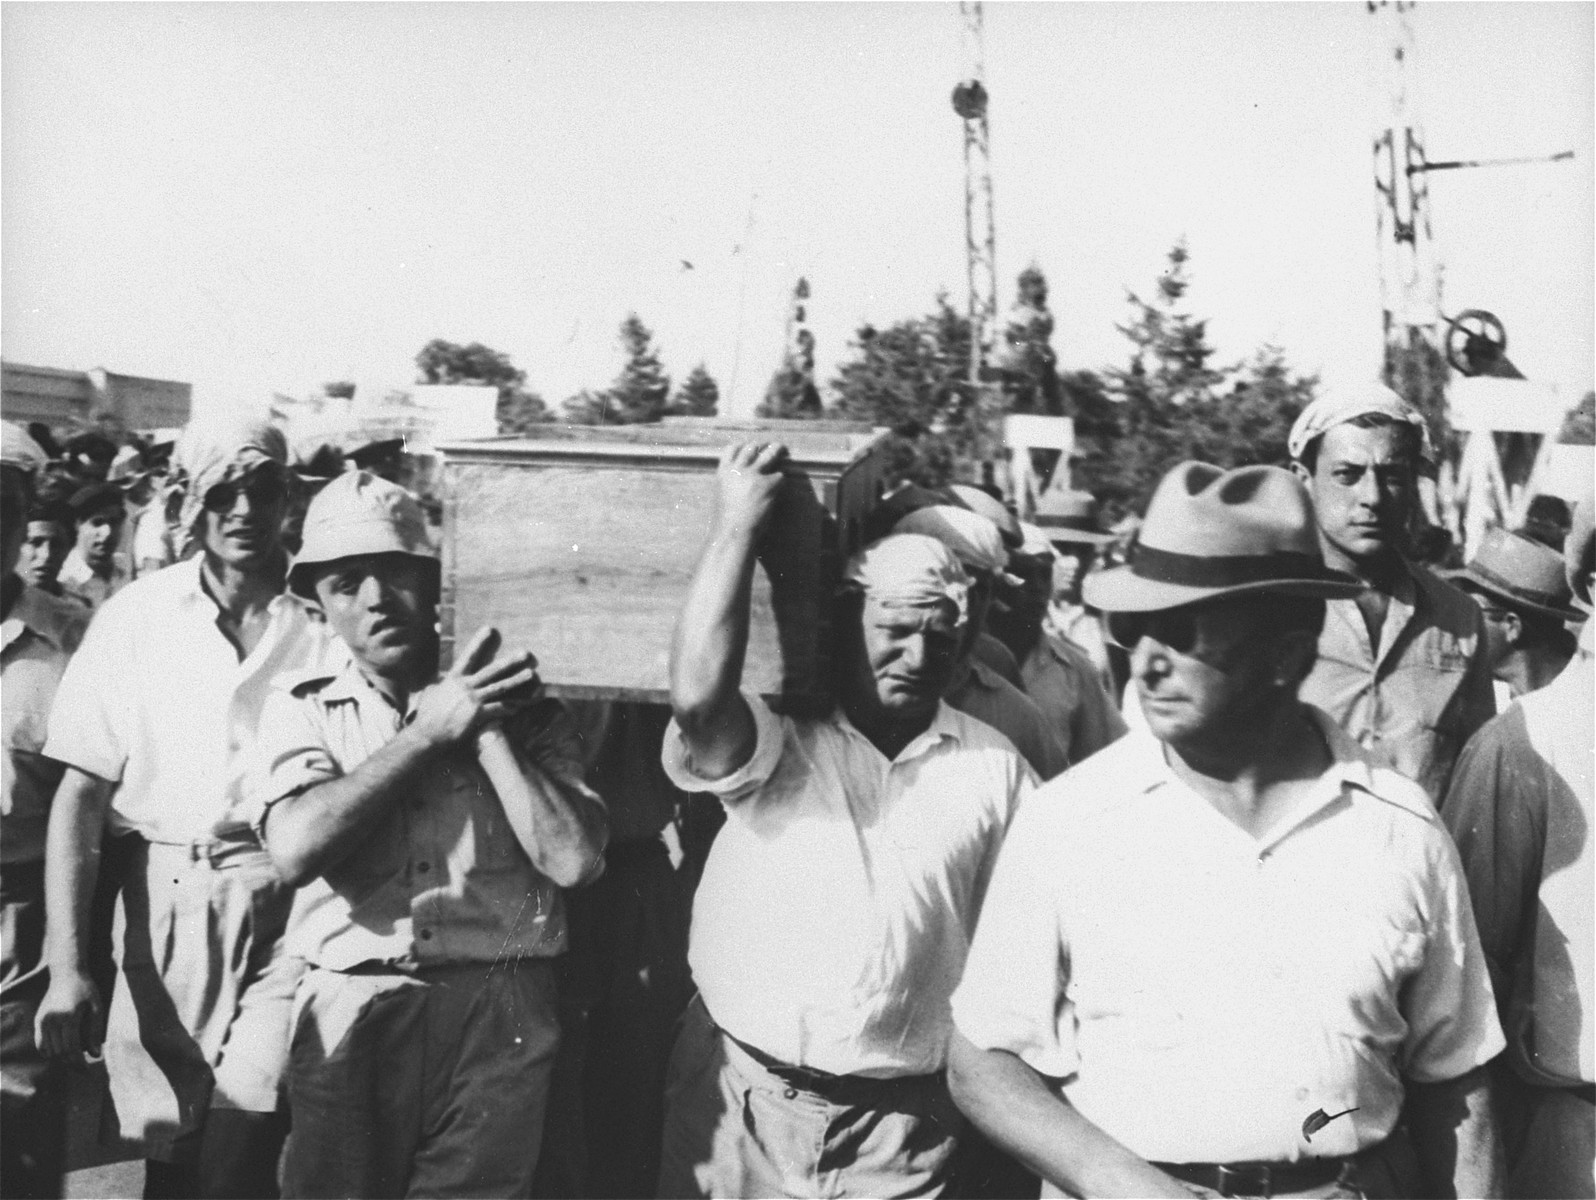 Crew members of the Exodus 1947 carry the coffin of fellow crewman, William Bernstein, who was killed in the struggle with the British off the coast of Haifa.  Pictured on the far left, carrying the coffin, is Jack V. Johnson, one of two non-Jewish crew members on board the Exodus.